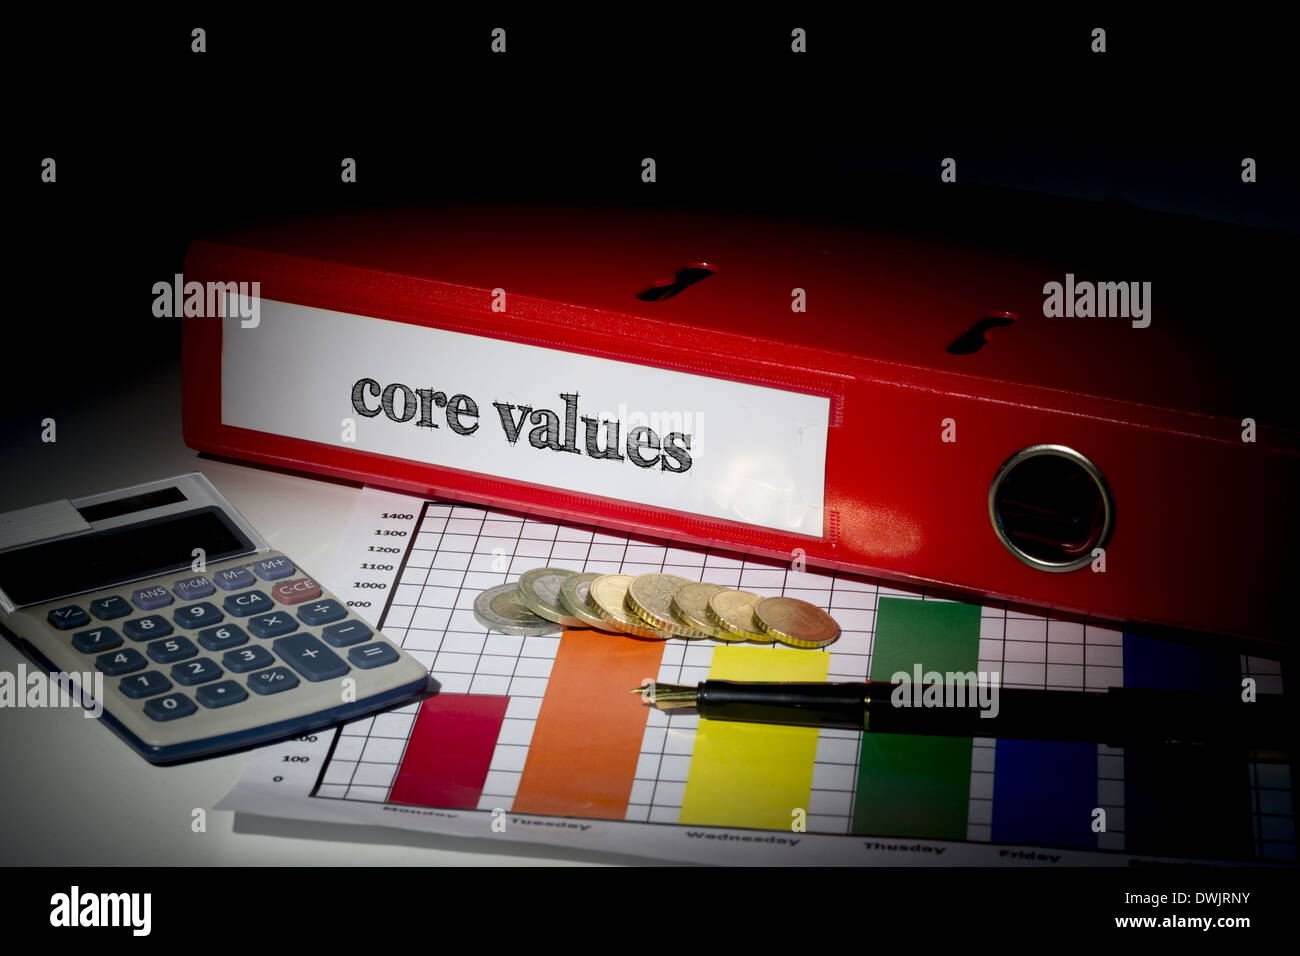 Core values on red business binder - Stock Image